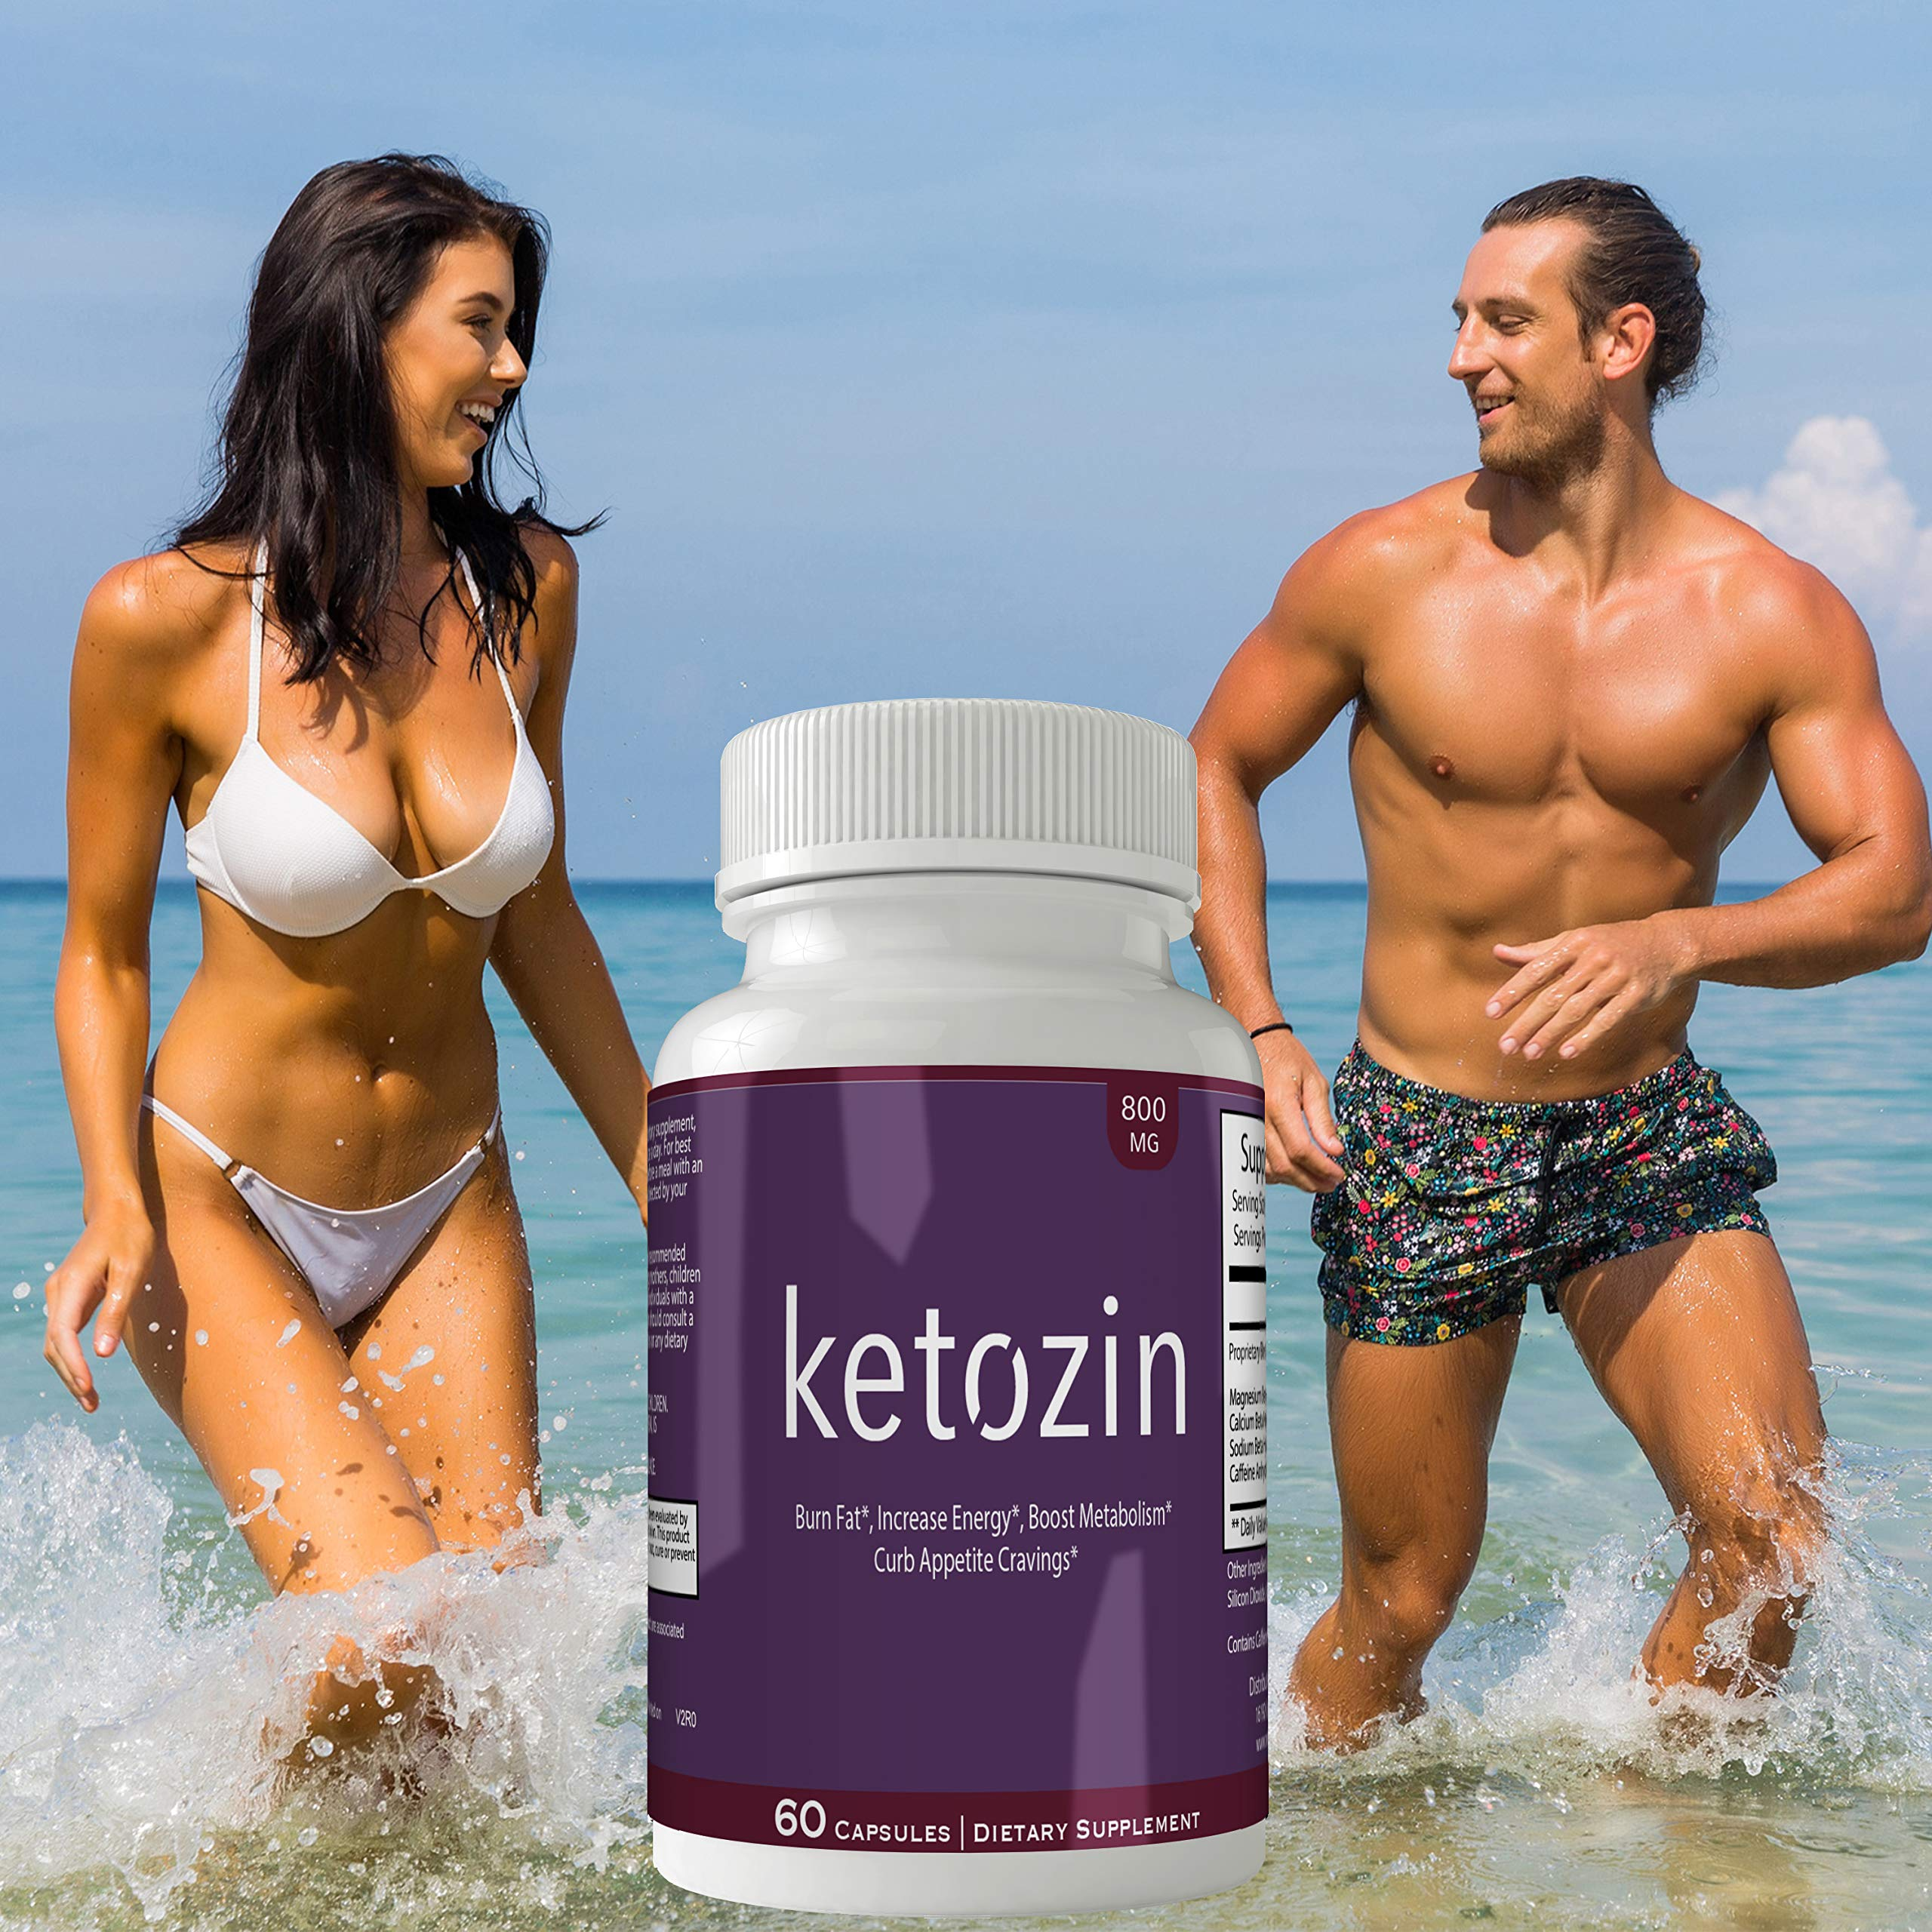 Ketozin Weight Loss Pills Advance Weight Loss Supplement Appetite Suppressant Natural Ketogenic 800 mg Formula with BHB Salts Ketone Diet Capsules to Boost Metabolism, Energy and Focus by nutra4health LLC (Image #6)